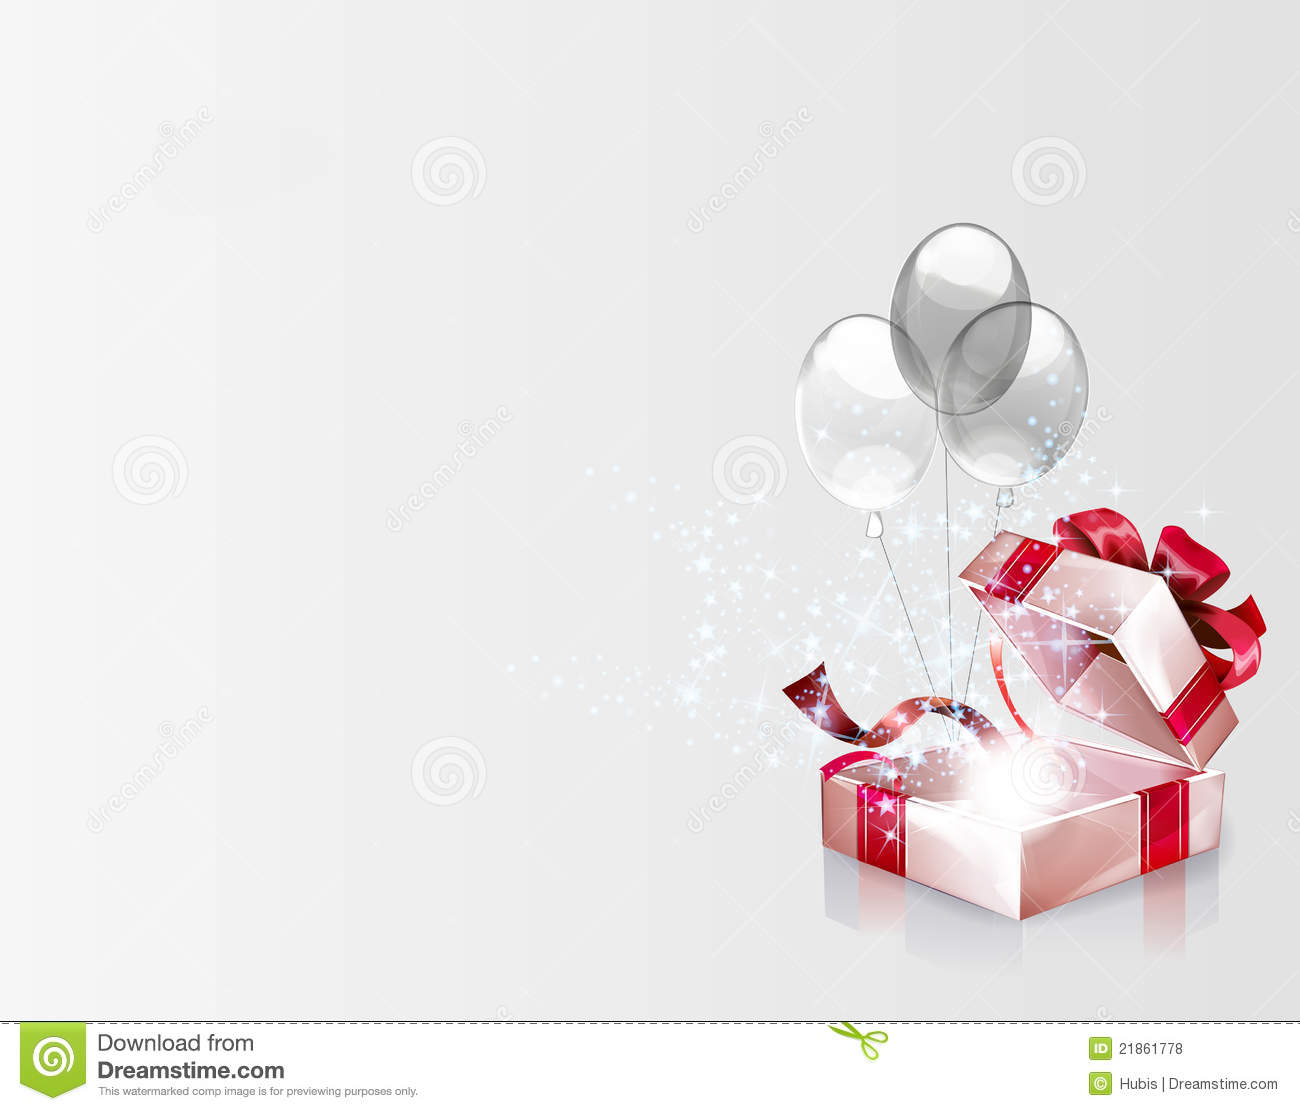 Christmas Gift Background: Open Explore Gift Background Royalty Free Stock Photos